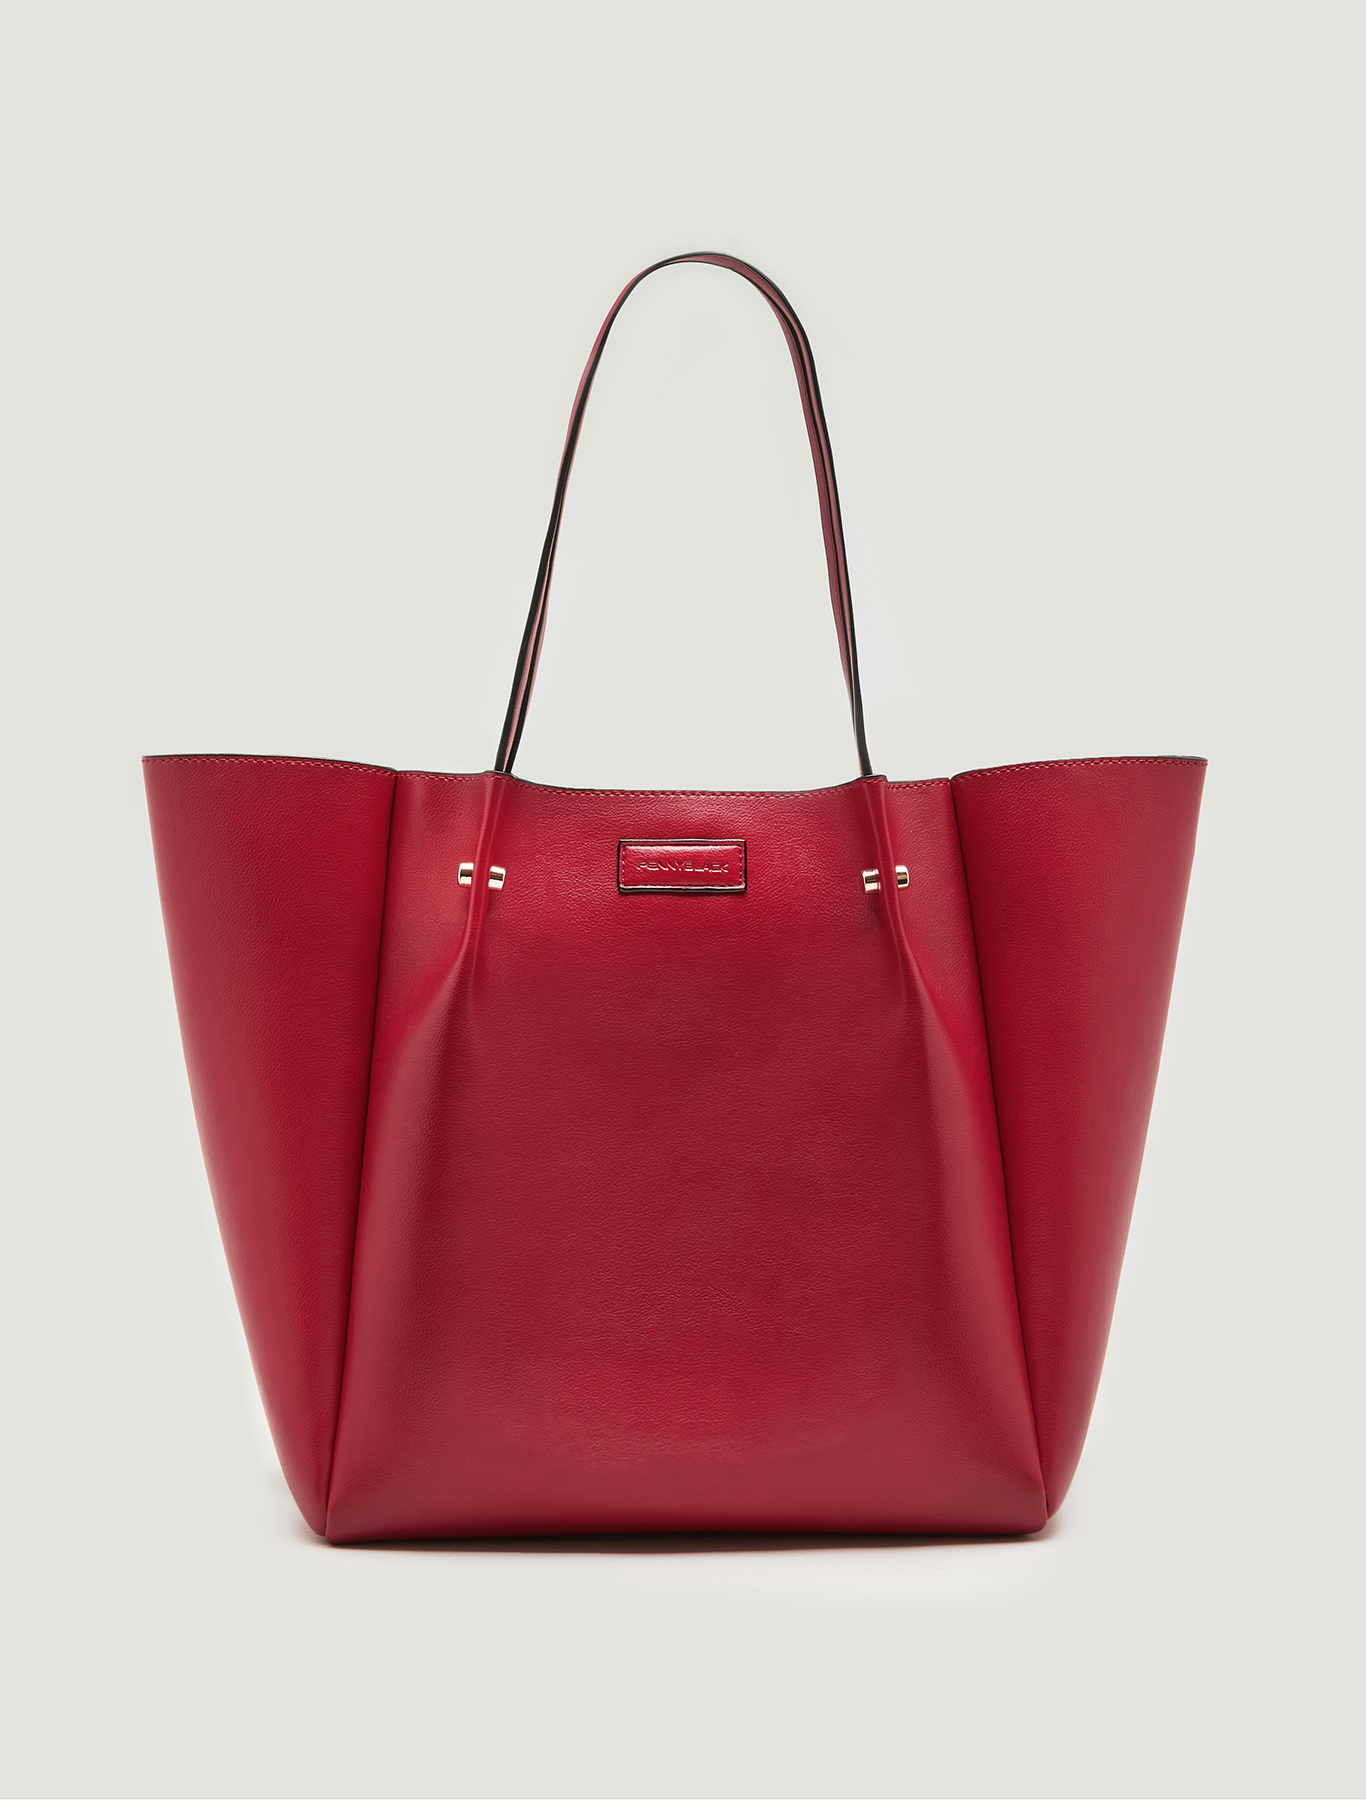 Shopper bag with matching clutch - red - pennyblack